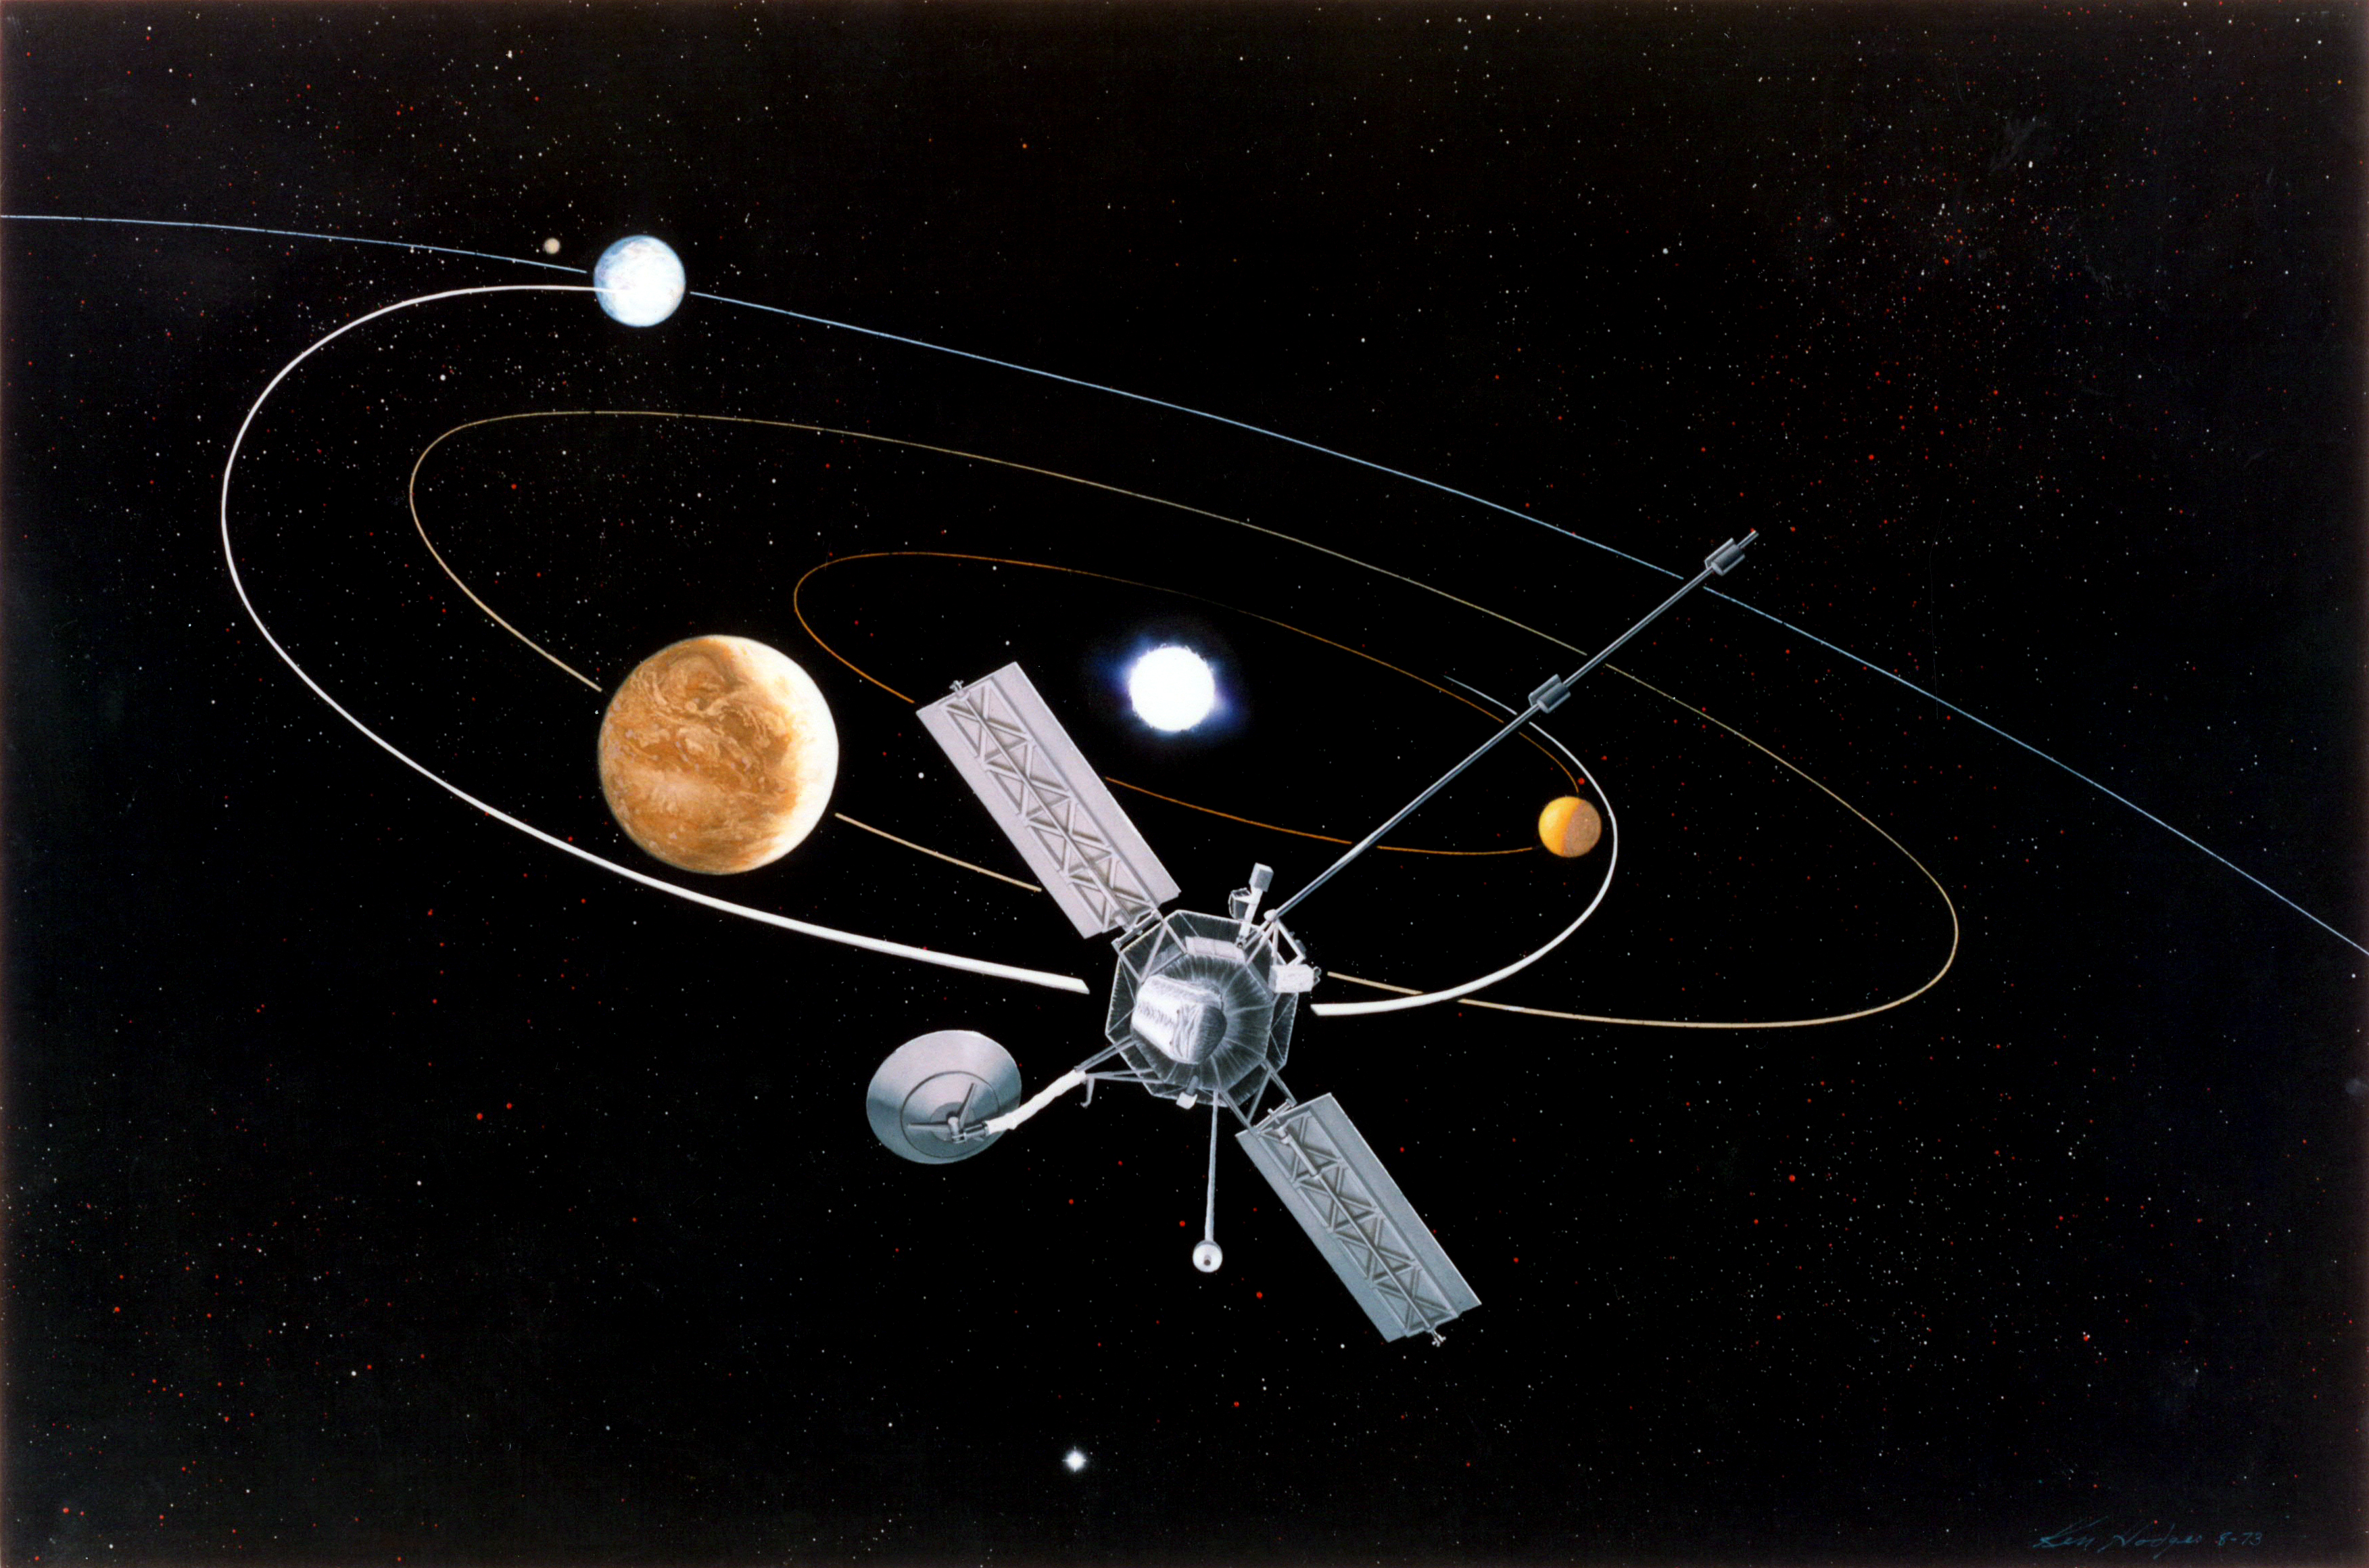 Artists' impression of the Mariner 10 mission. The first mission to perform a gravity assist, it used a flyby of the planet Venus in order to decrease its perihelion. This would allow the spacecraft to meet Mercury on three occasions in 1974 and 1975.